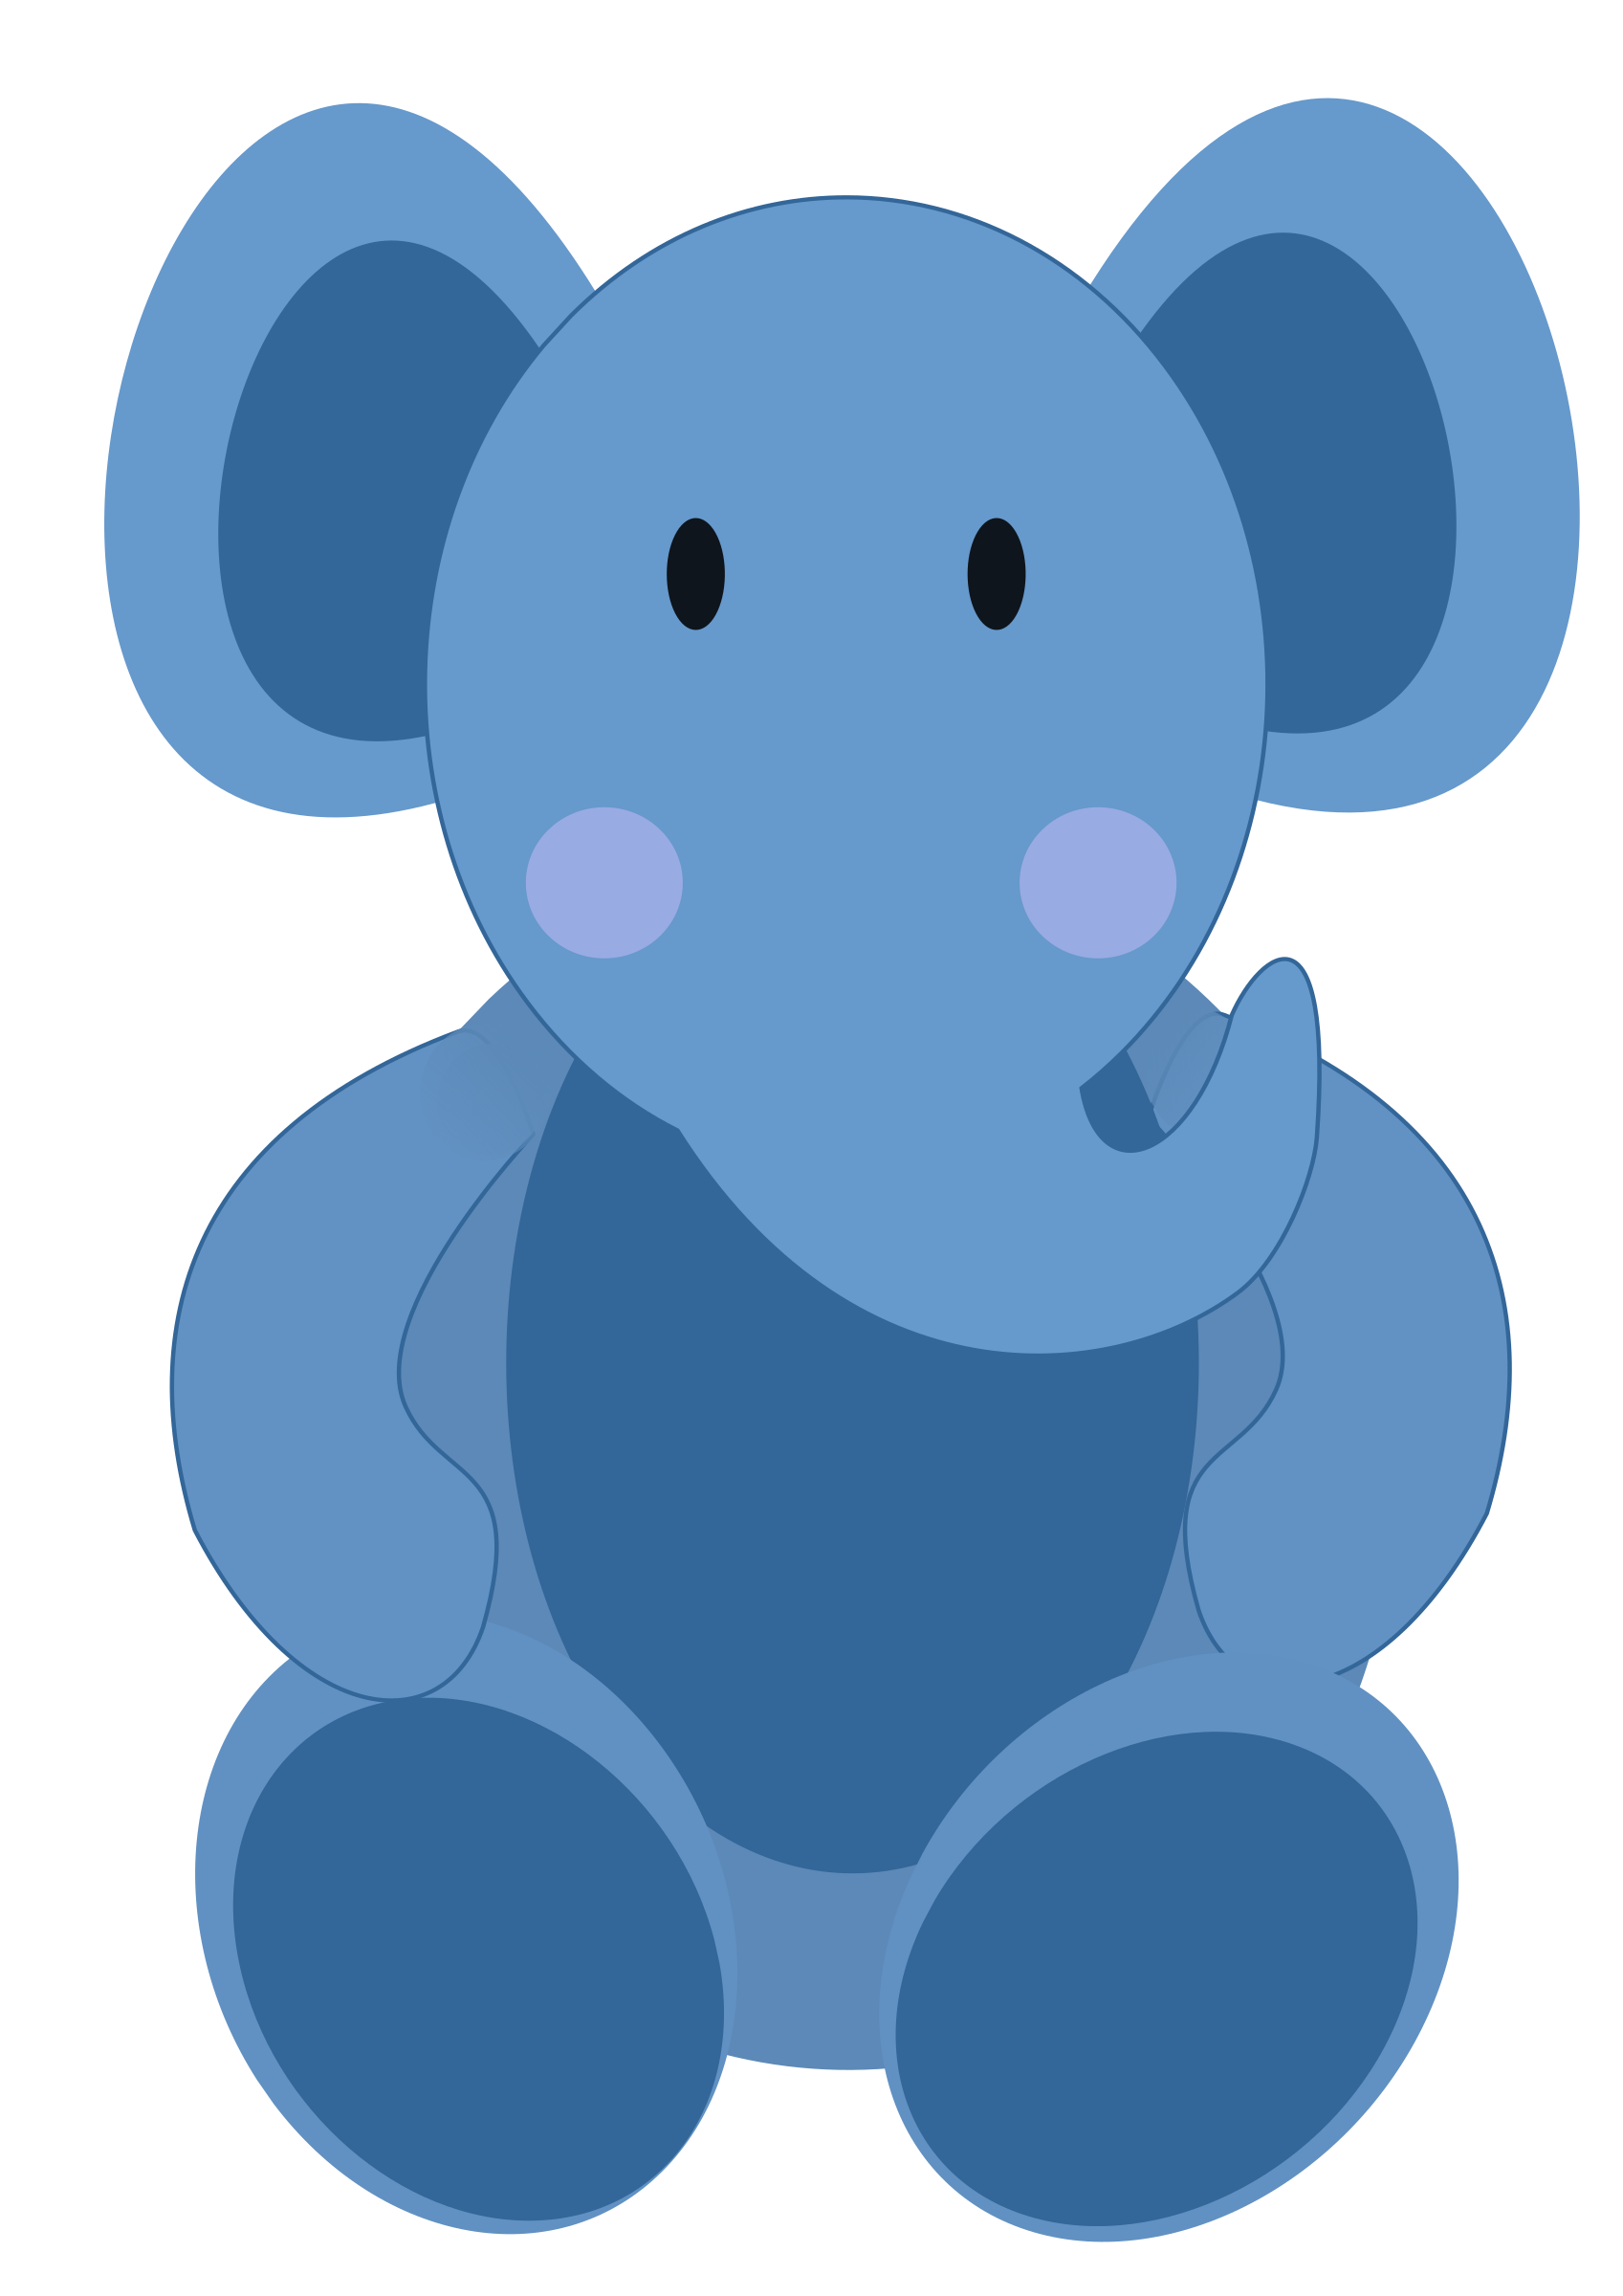 Face clipart baby elephant. By cgillis images illustrations